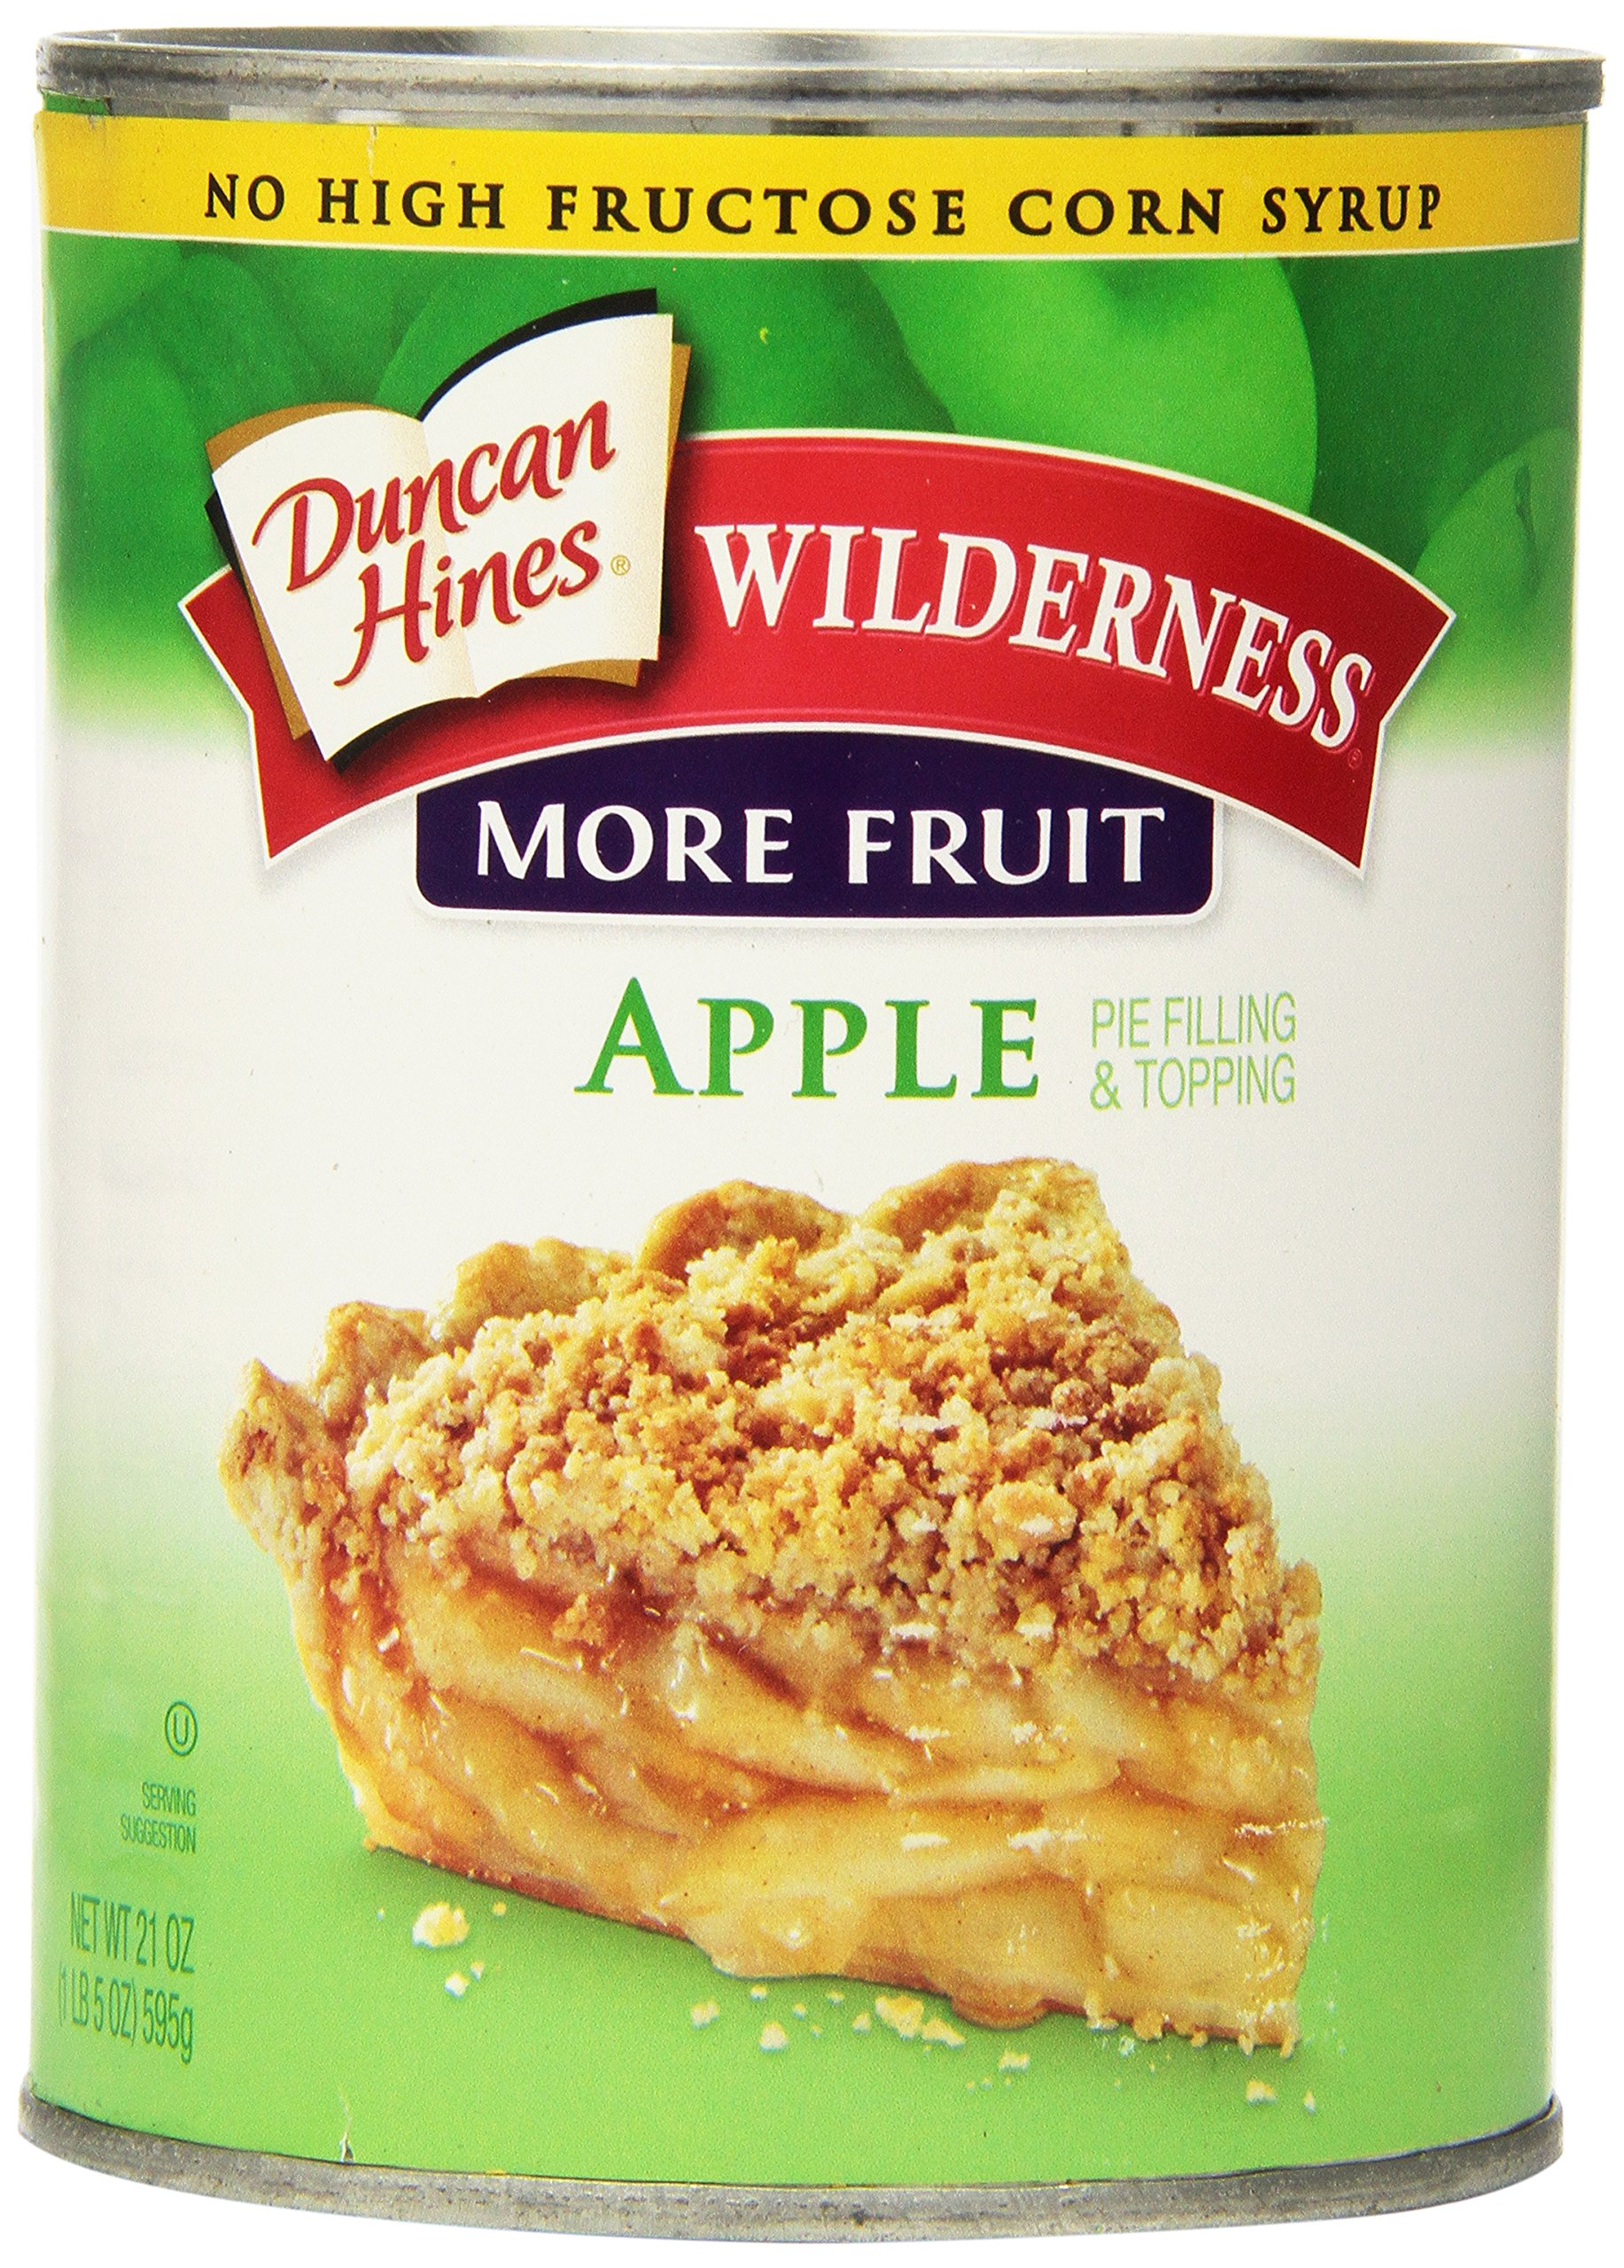 Wilderness More Fruit Pie Filling & Topping, Apple, 21 Ounce (Pack of 12)